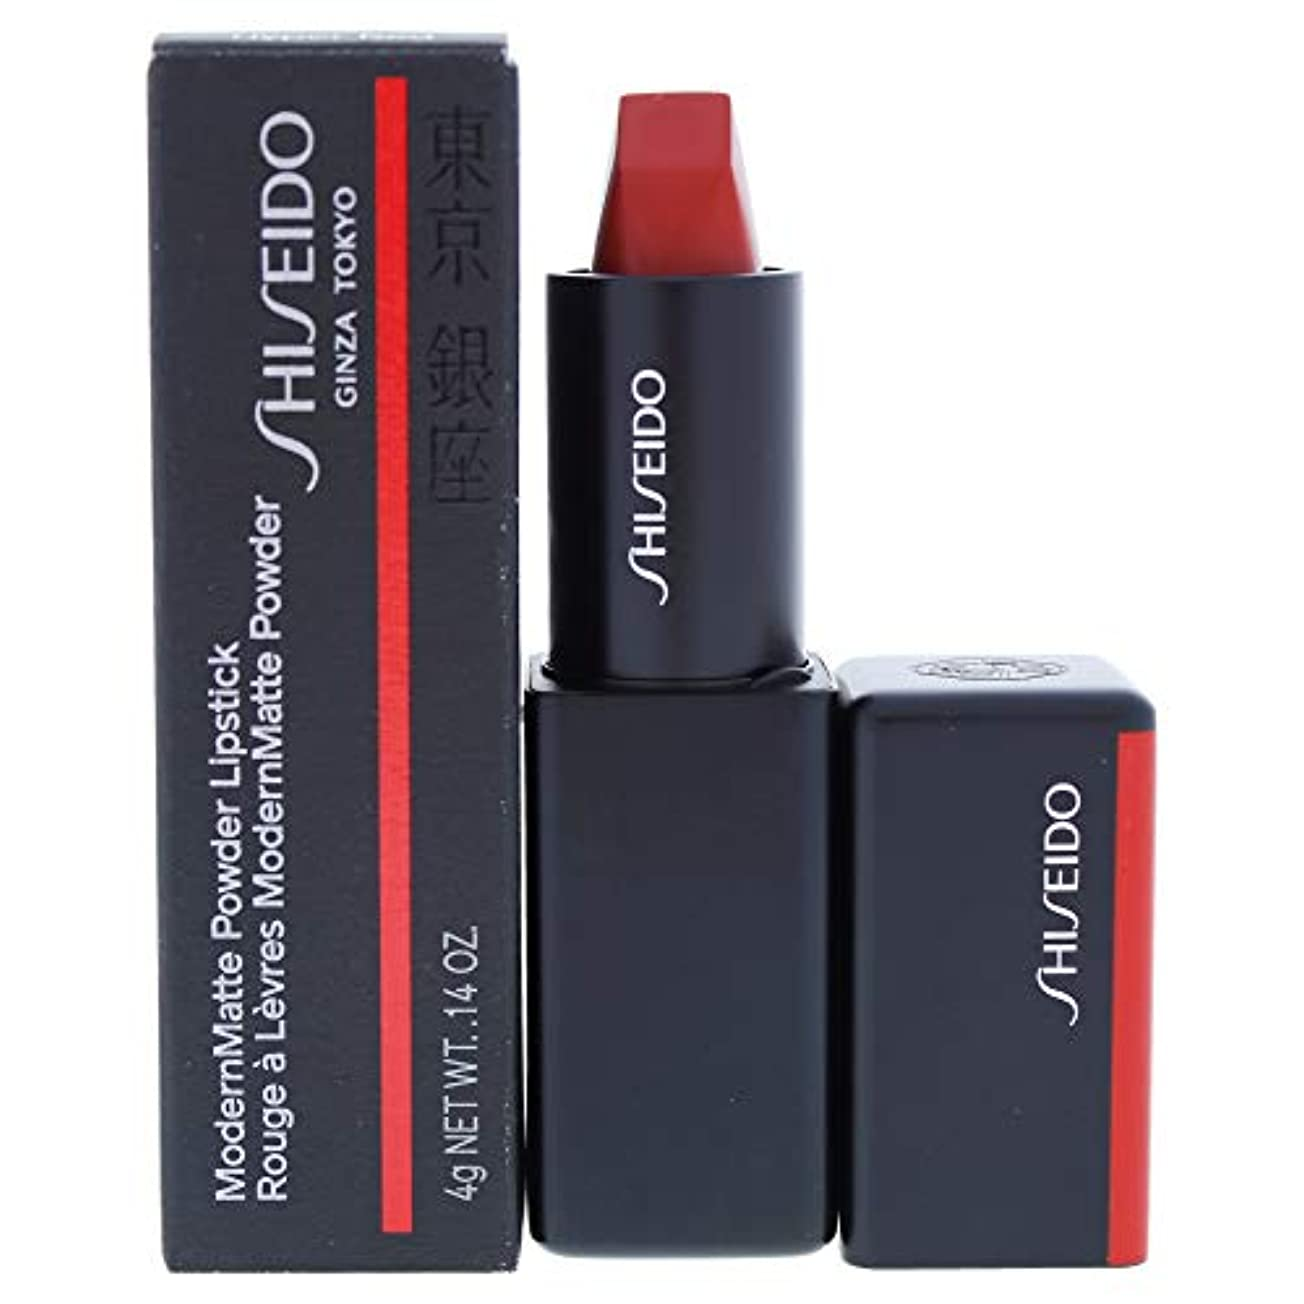 単なるセント決定資生堂 ModernMatte Powder Lipstick - # 514 Hyper Red (True Red) 4g/0.14oz並行輸入品